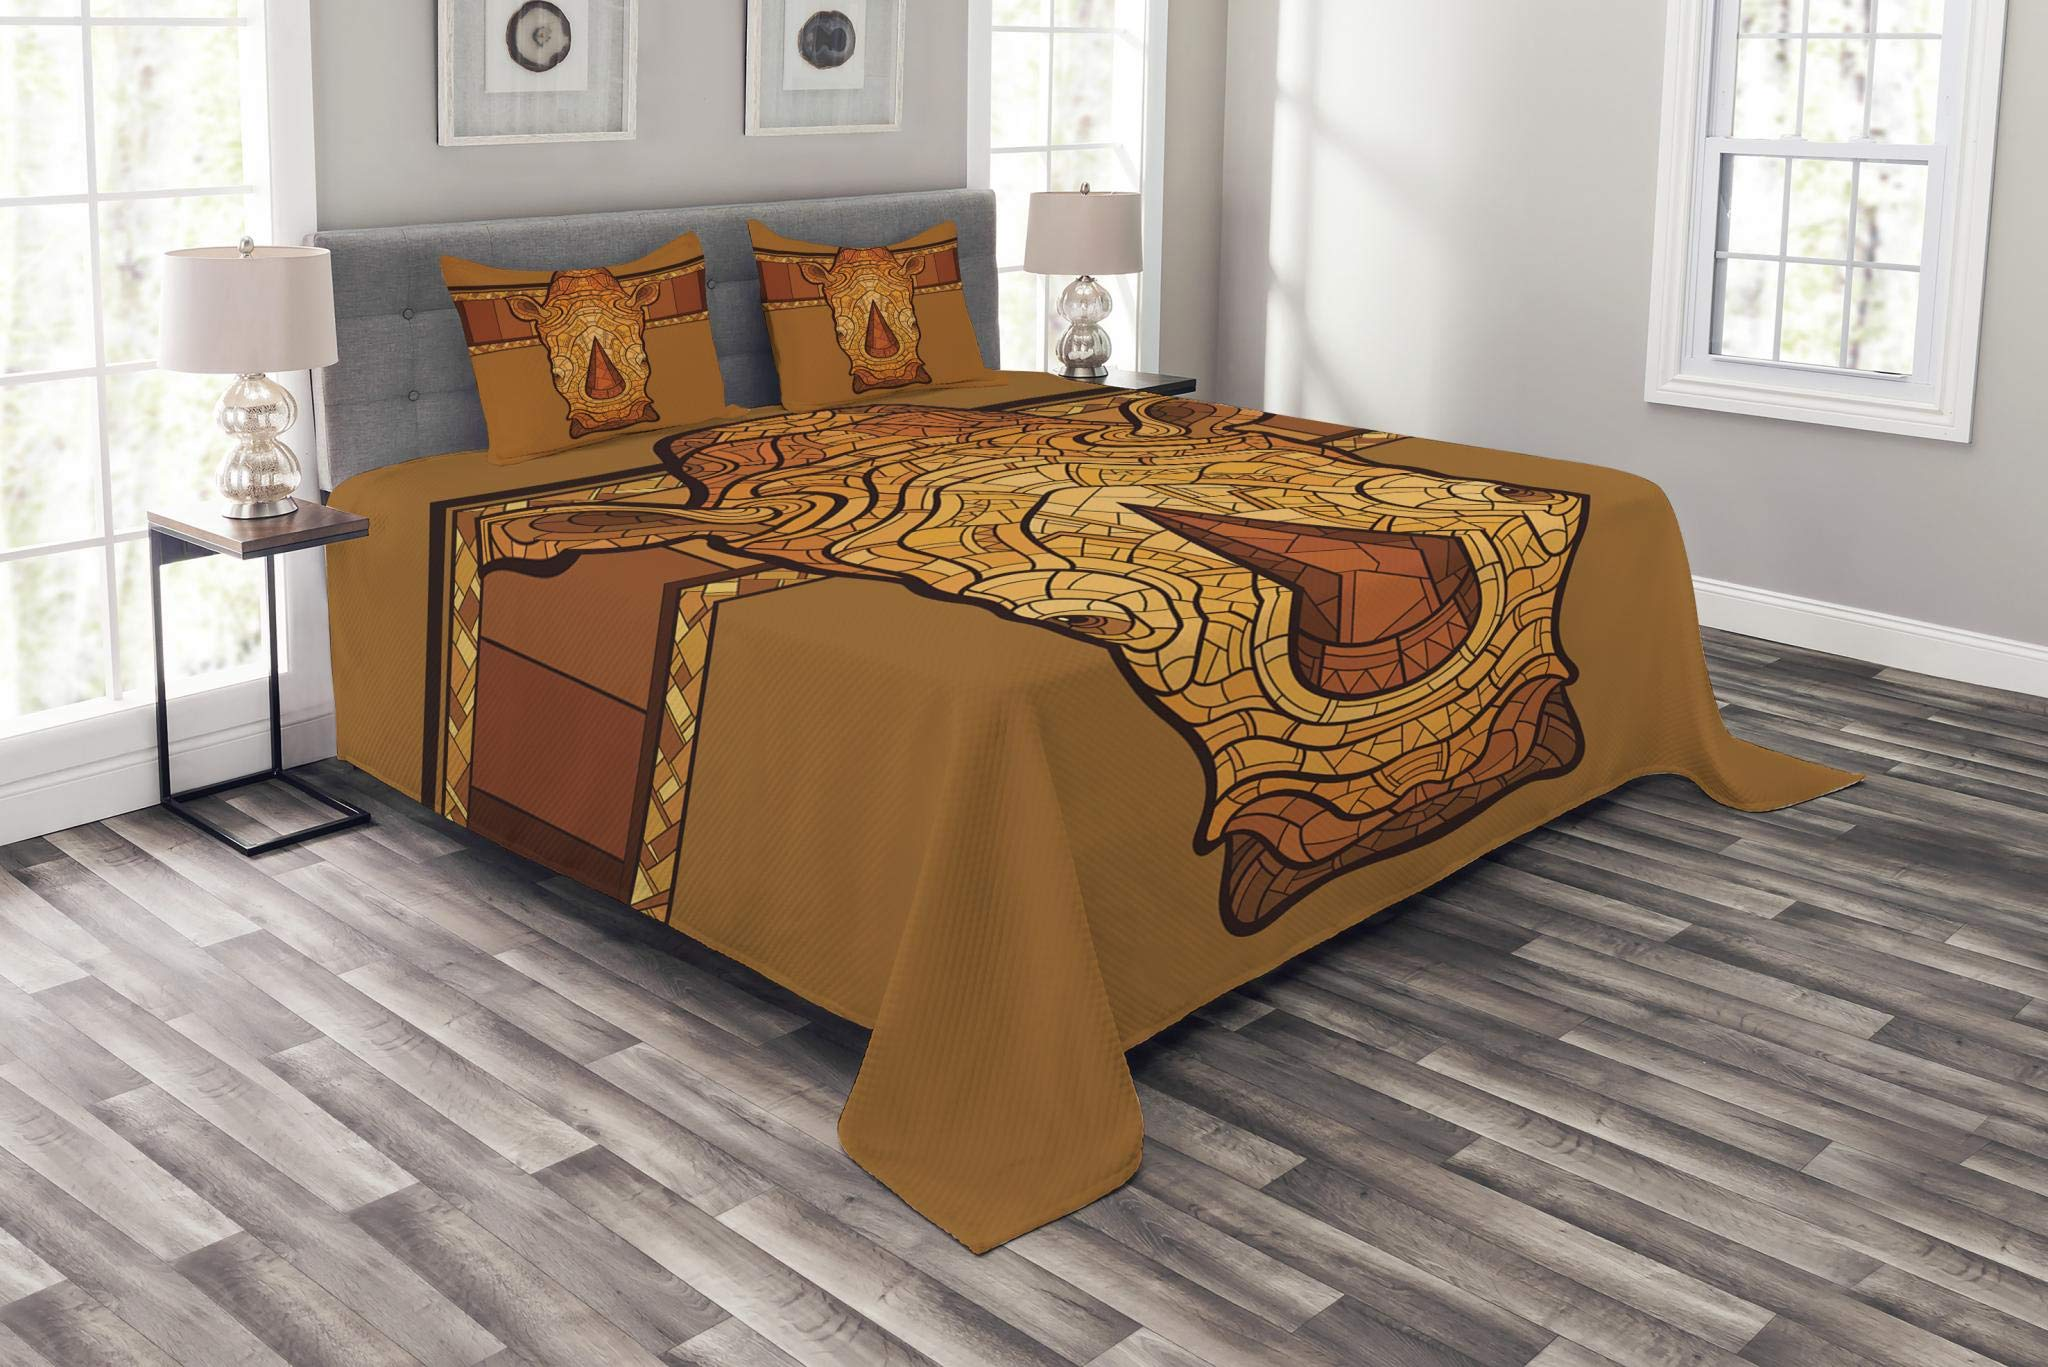 Lunarable Animal Bedspread Set King Size, Vector Illustration of a Rhinoceros Head with an Ethnic Ornament Print, Decorative Quilted 3 Piece Coverlet Set with 2 Pillow Shams, Cinnamon Pale Coffee